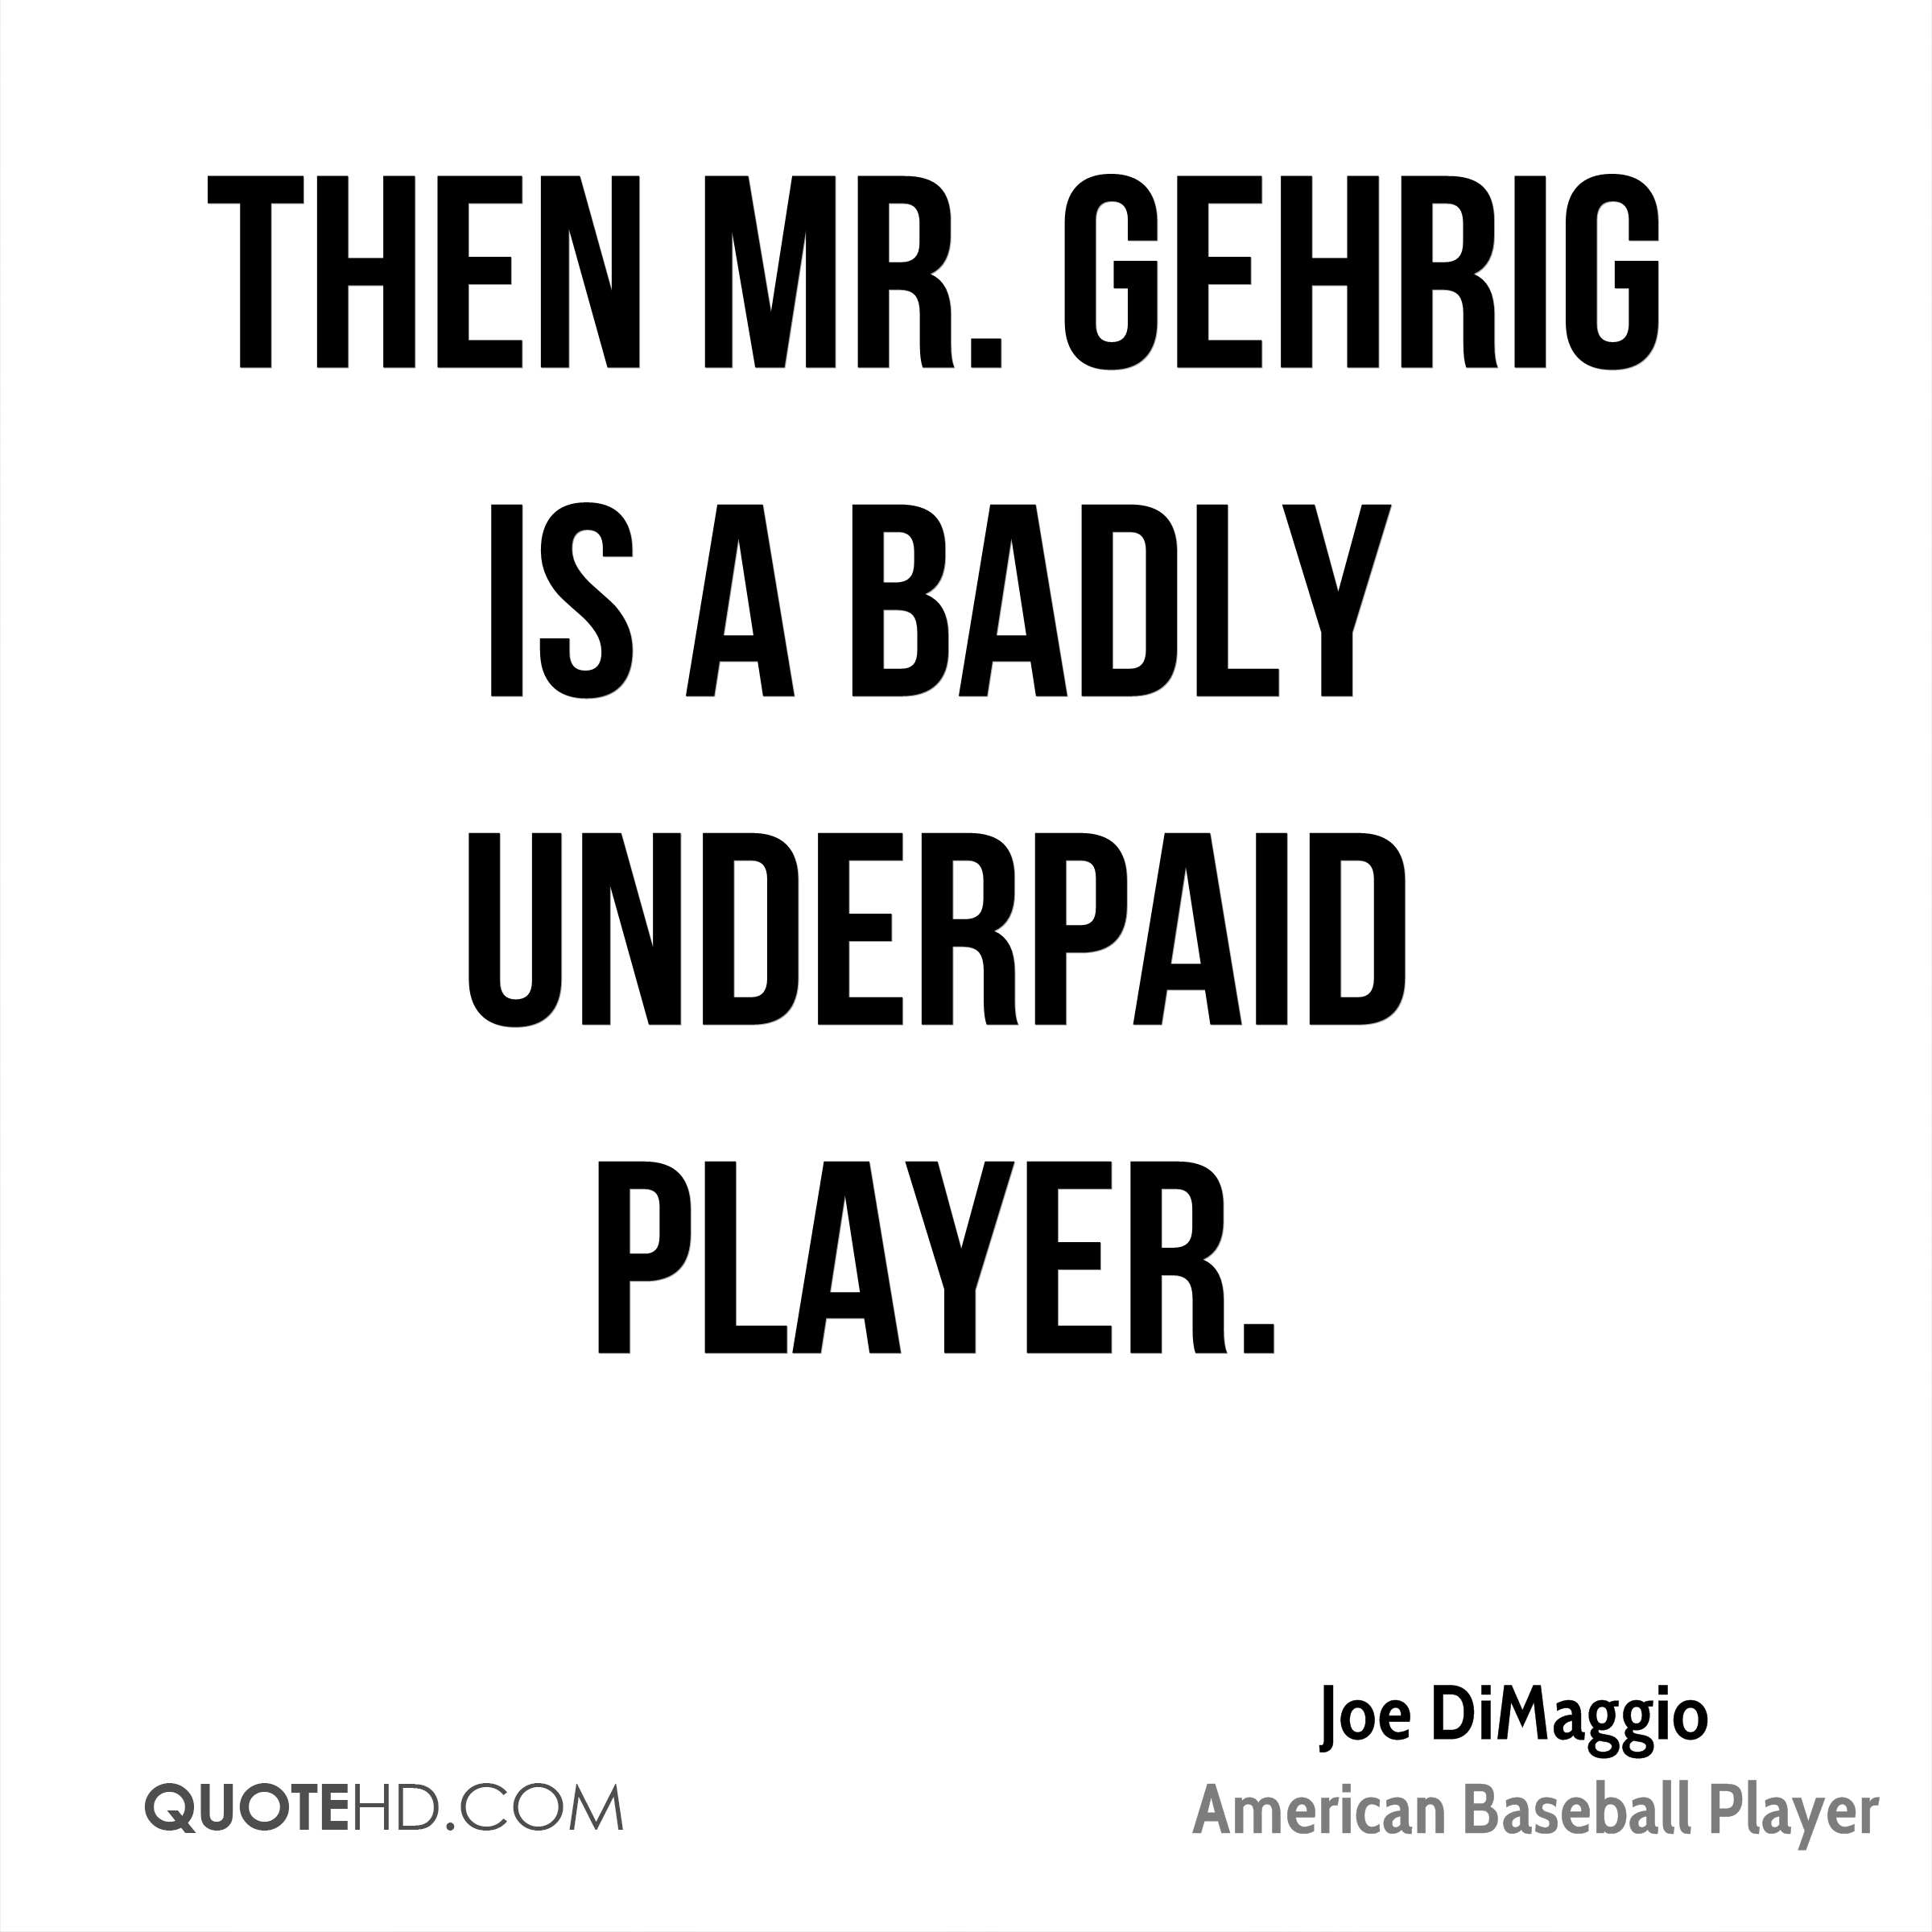 Then Mr. Gehrig is a badly underpaid player.